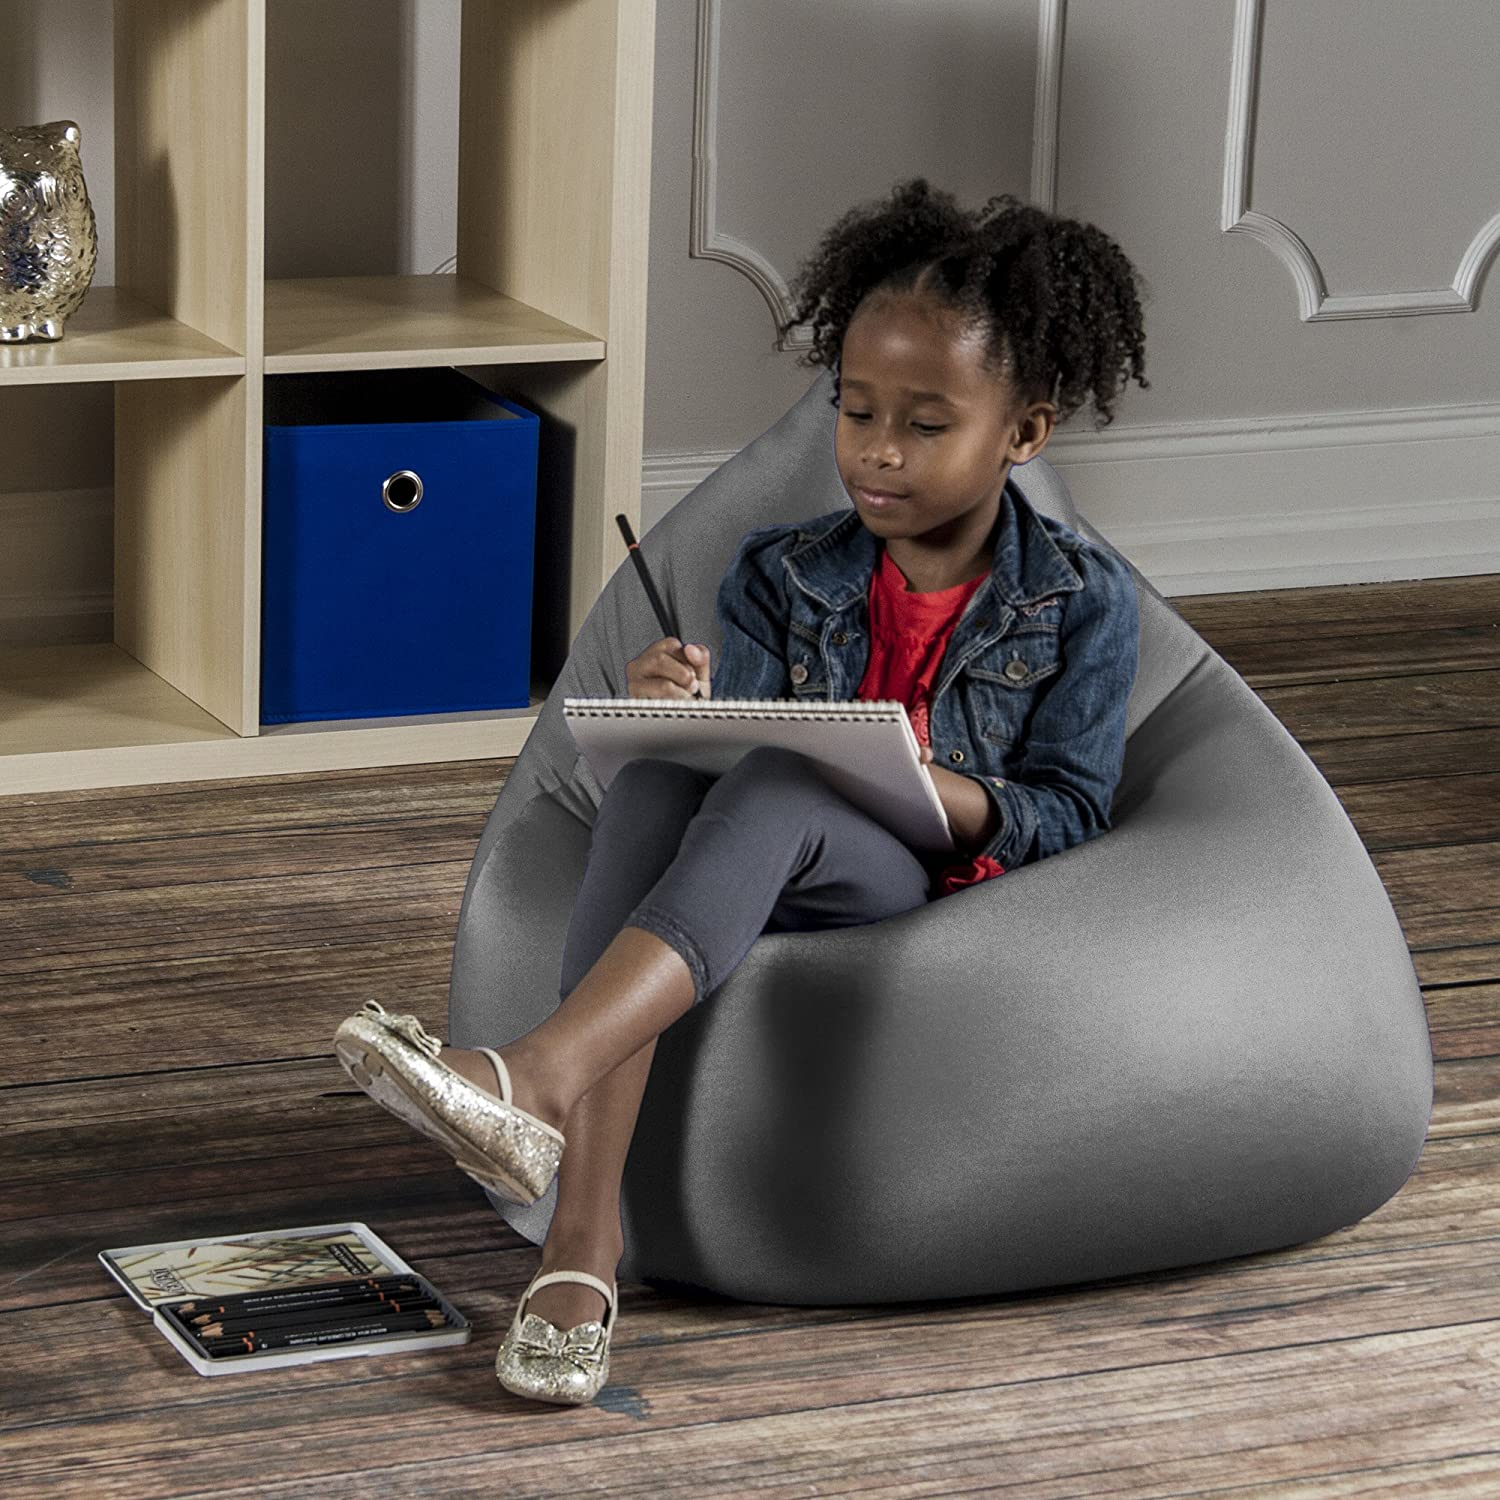 Jaxx 16757347 Nimbus Spandex Bean Bag Chair Furniture for Kids Rooms, Playrooms, and More, Small, Silver